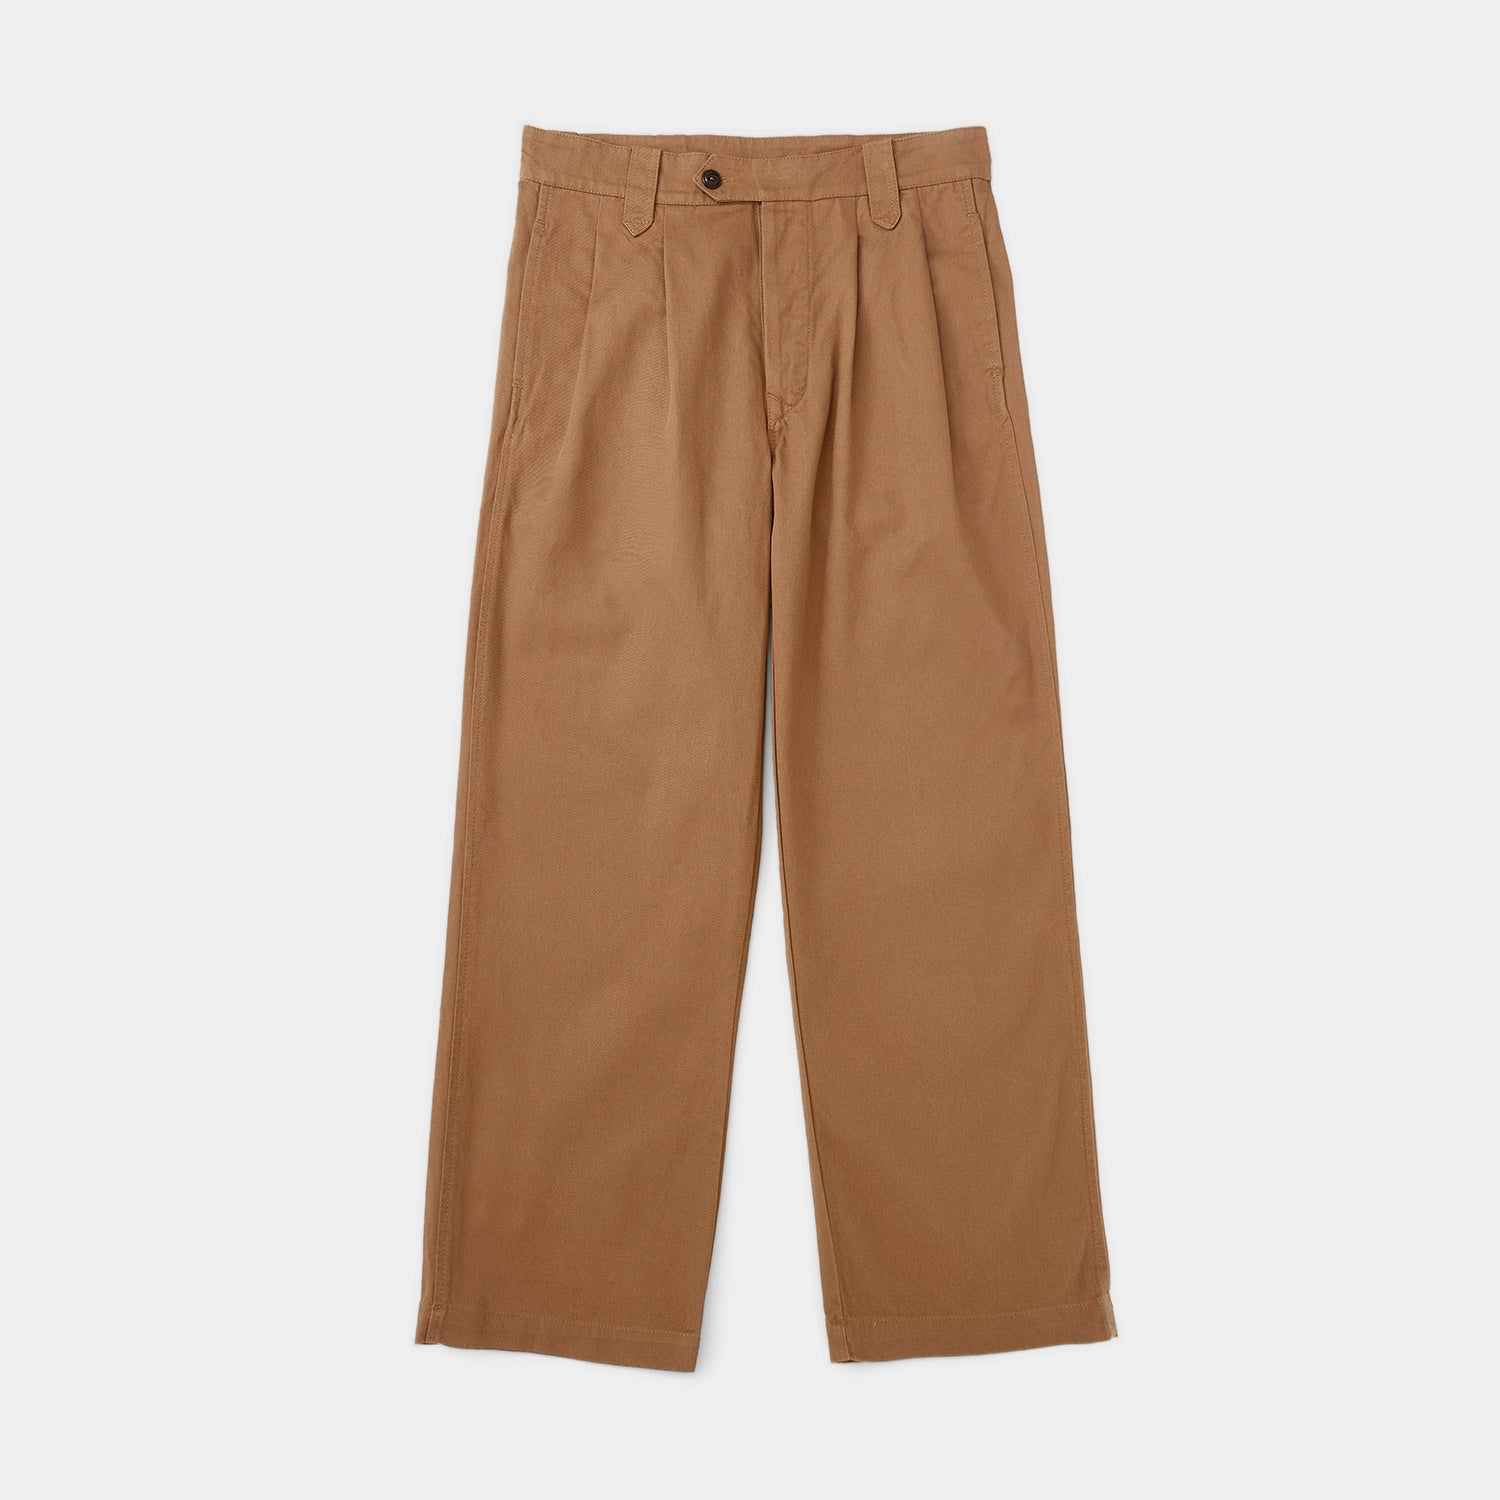 Yarmouth Oilskins Khaki Work Trousers